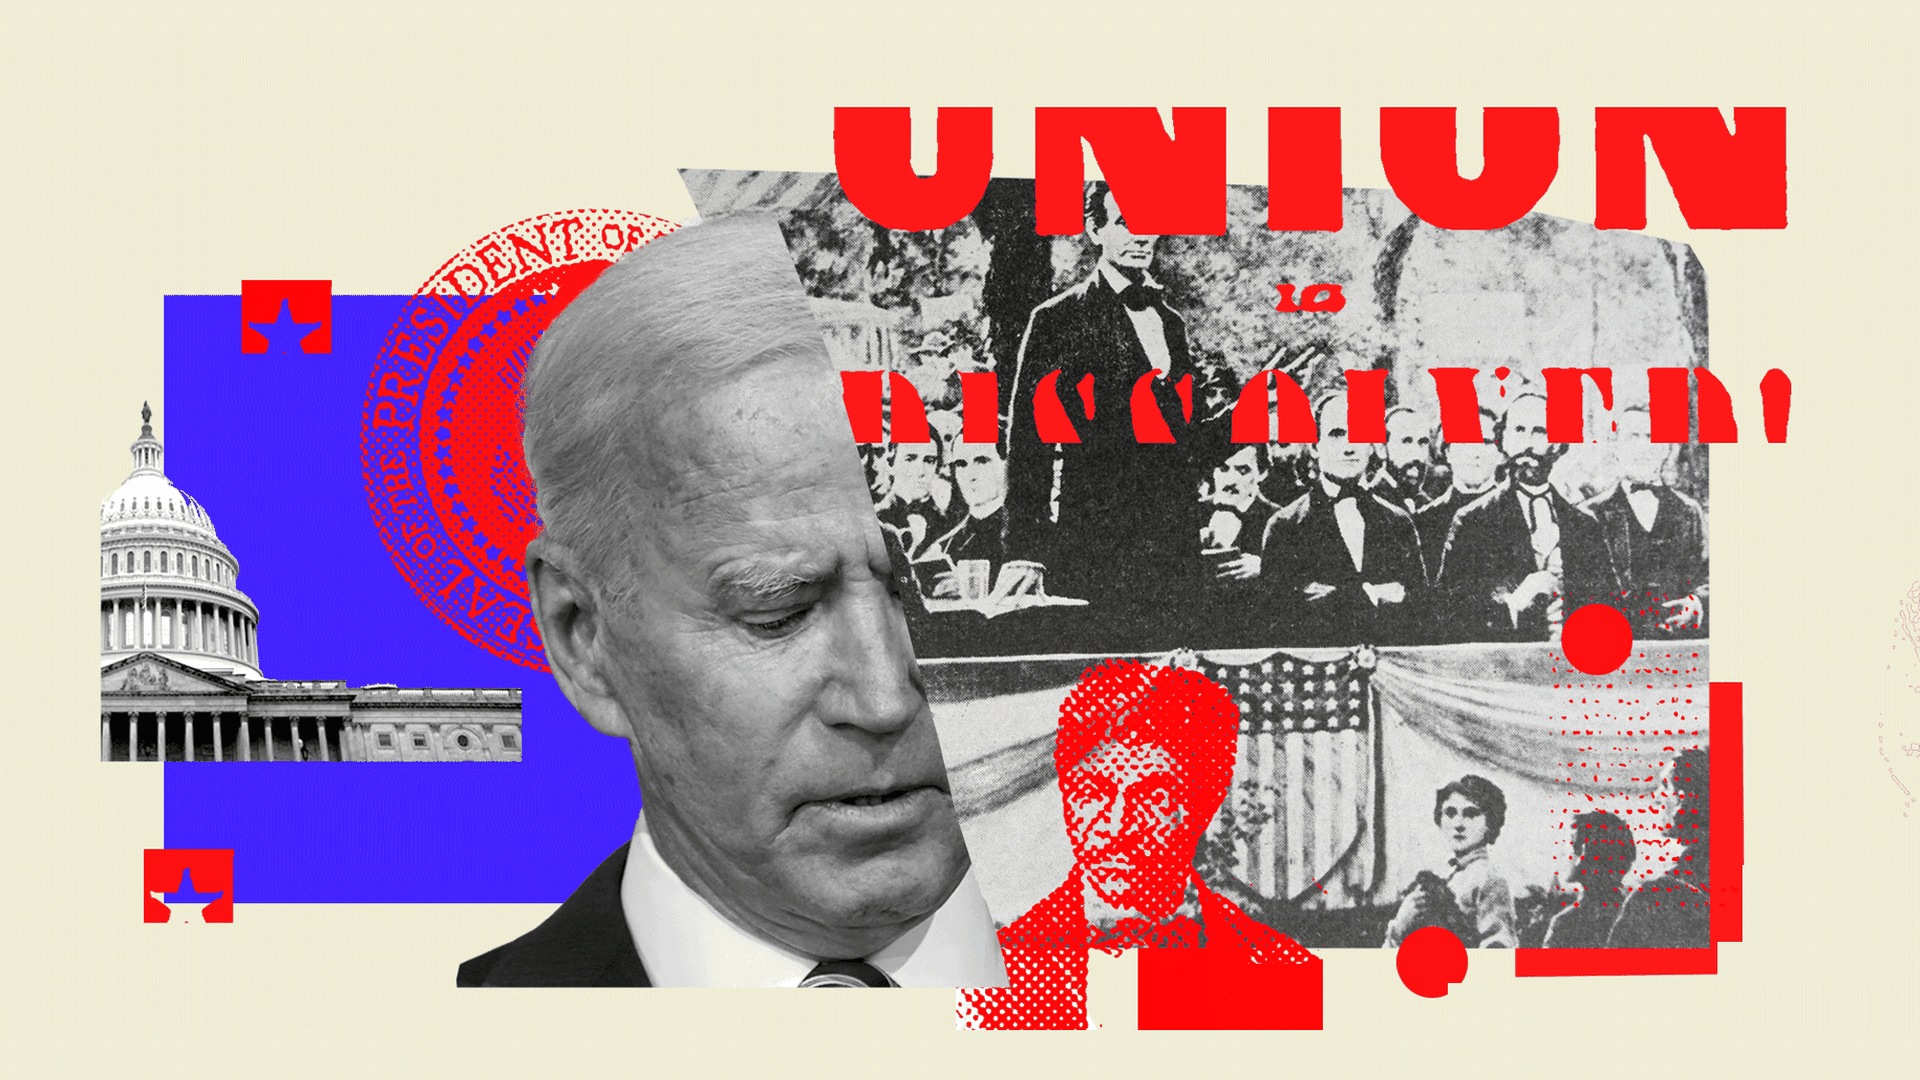 A collage of images of Joe Biden, the Capitol, Abraham Lincoln, and the Civil War era